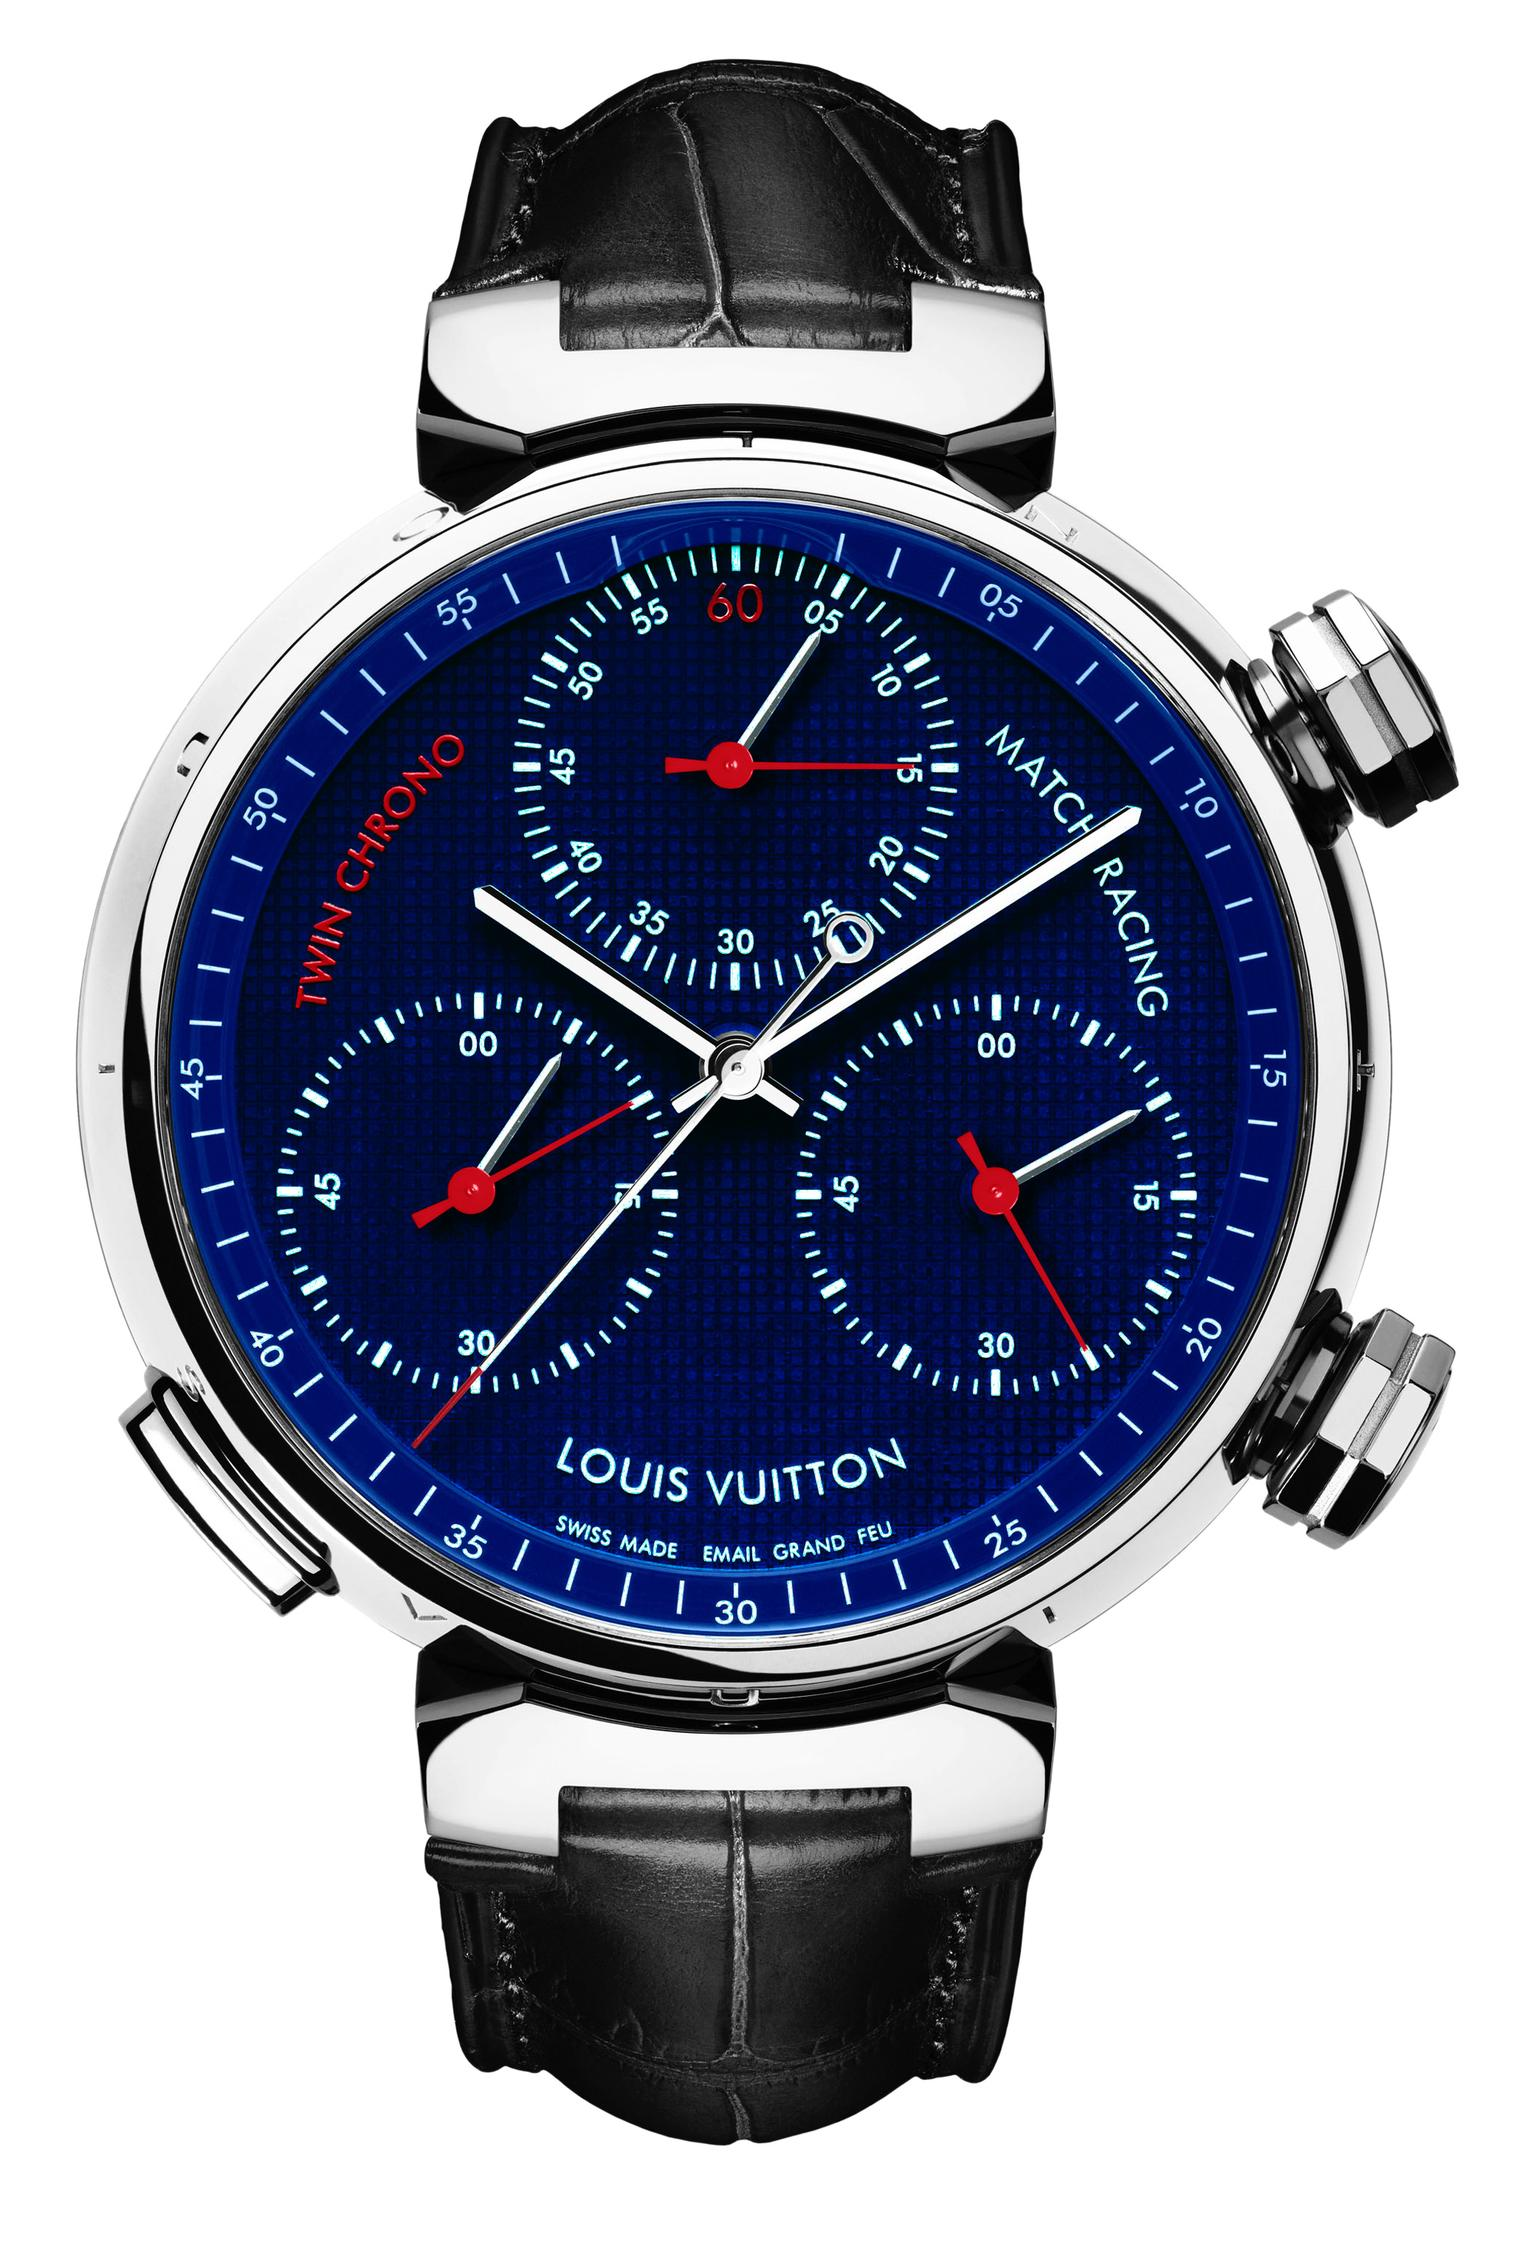 Louis Vuitton Tambour Twin Chrono_20130619_Zoom